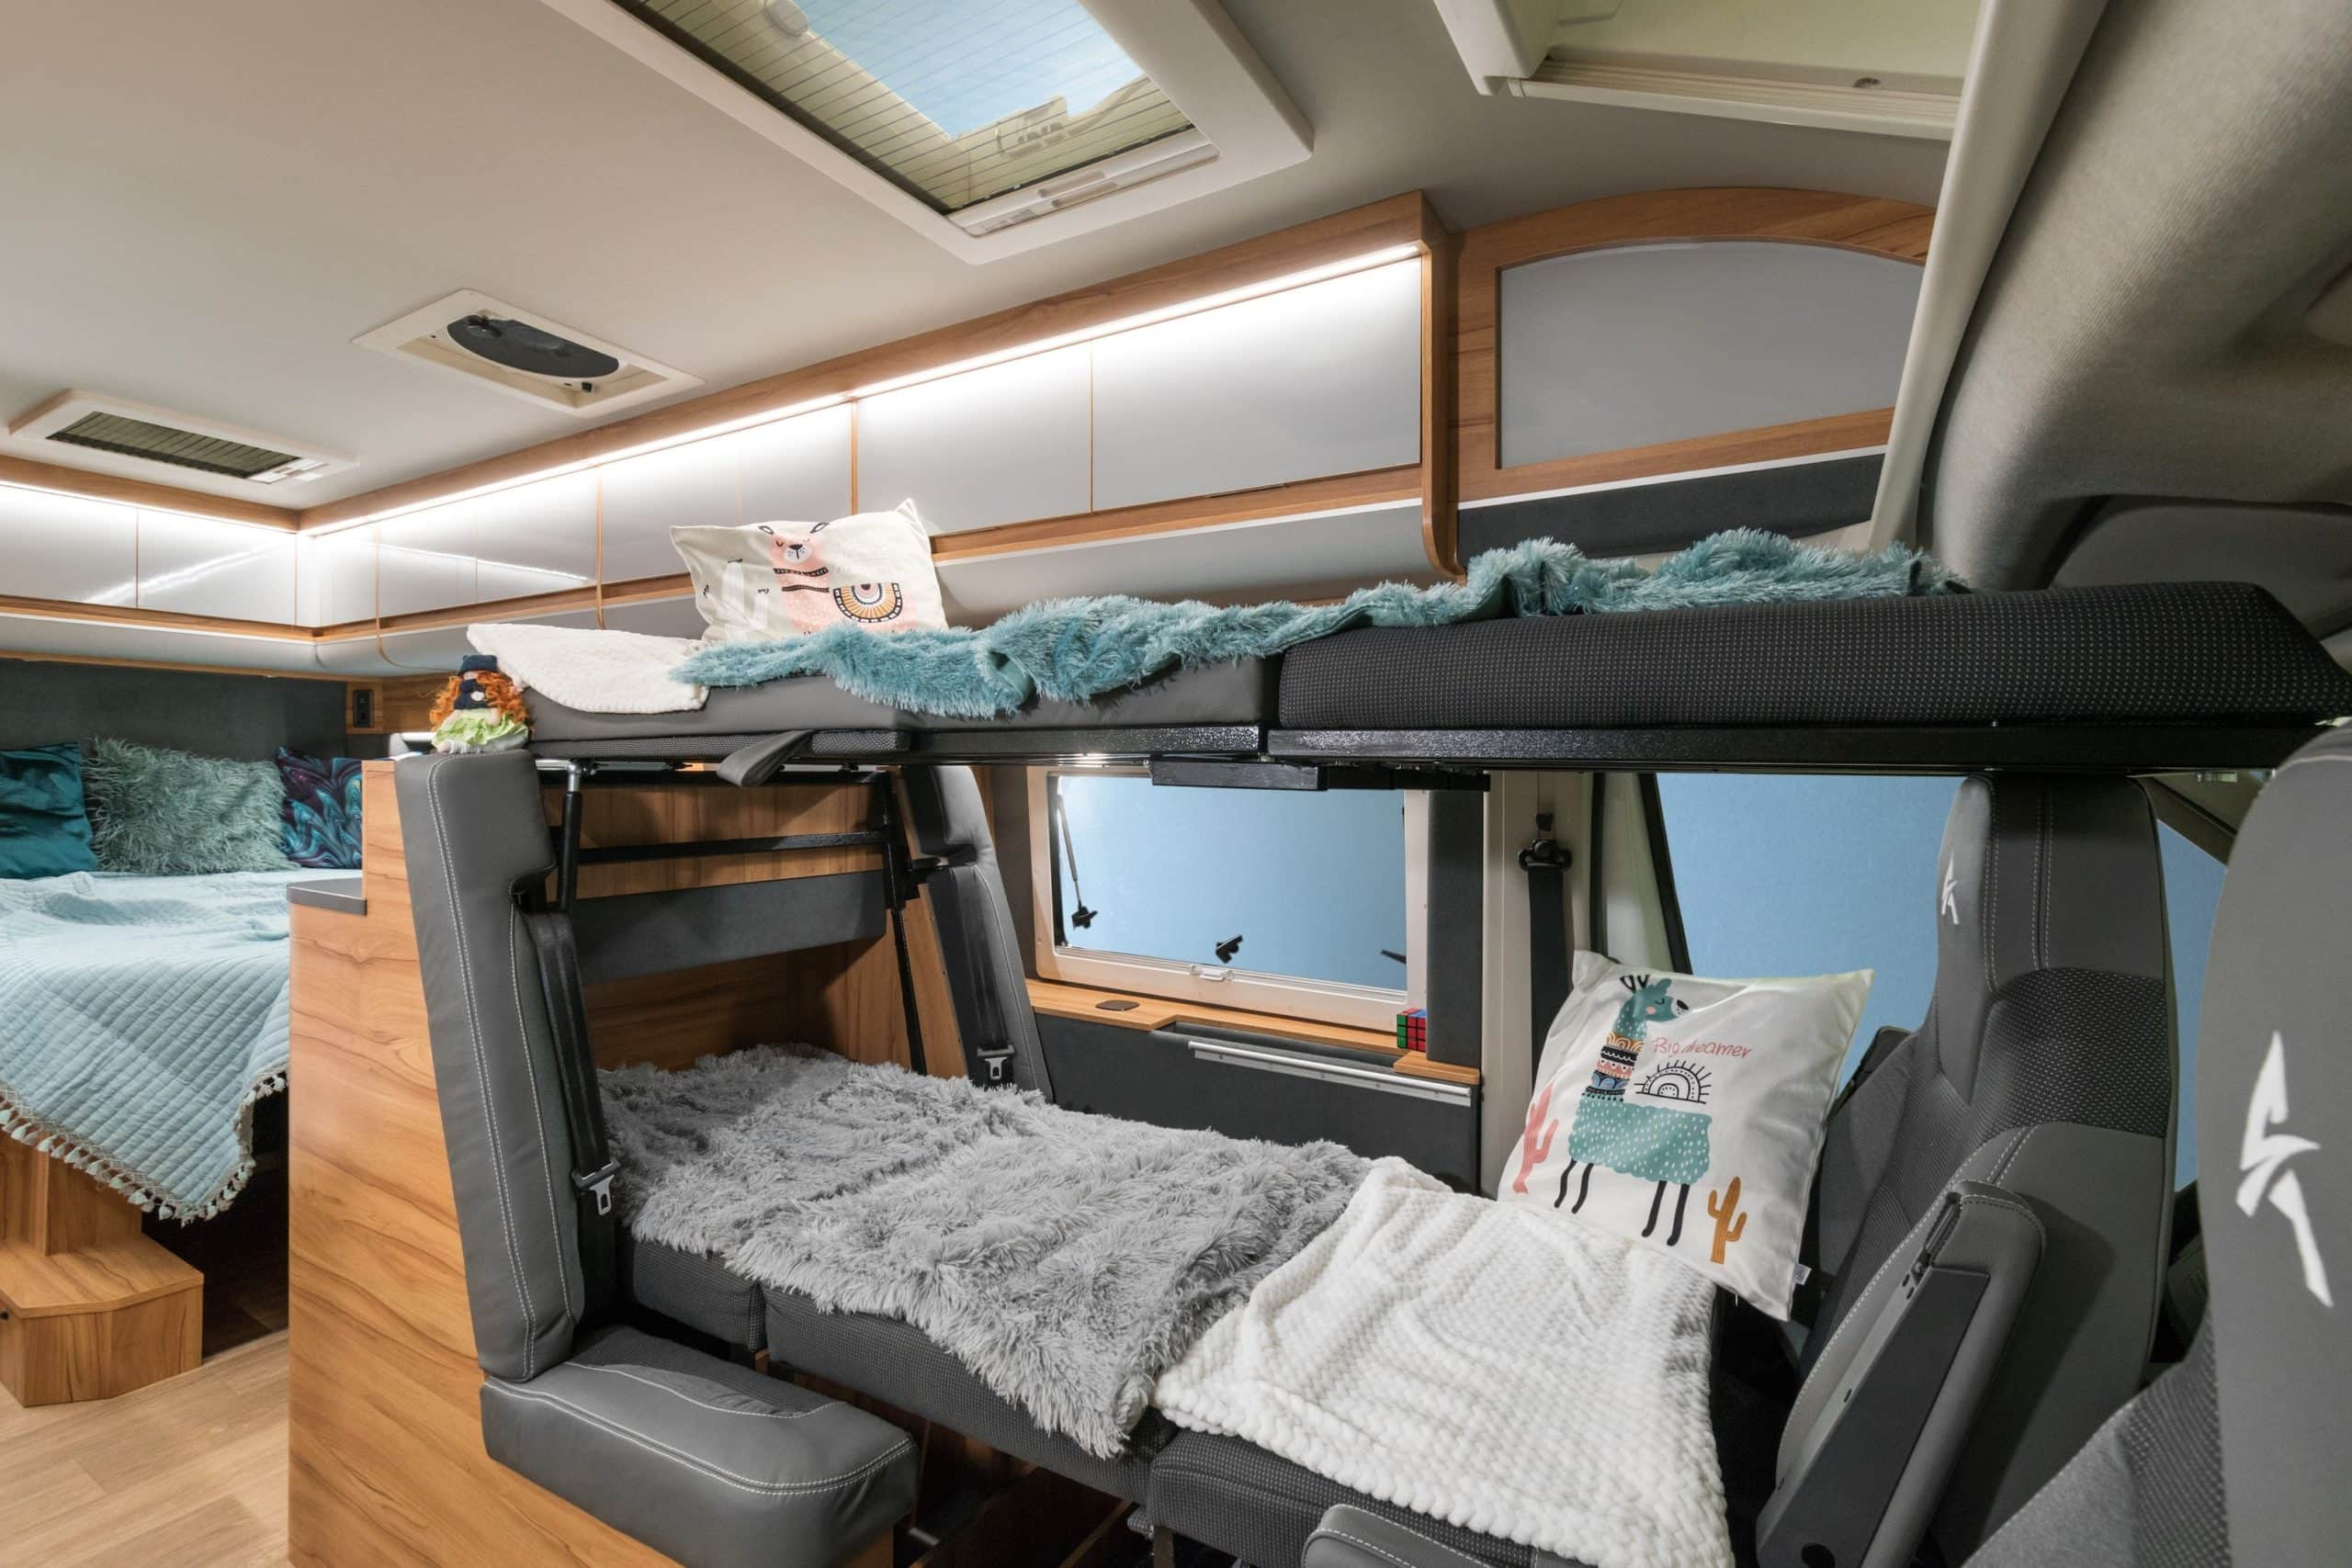 Affinity Camper Gallery 25